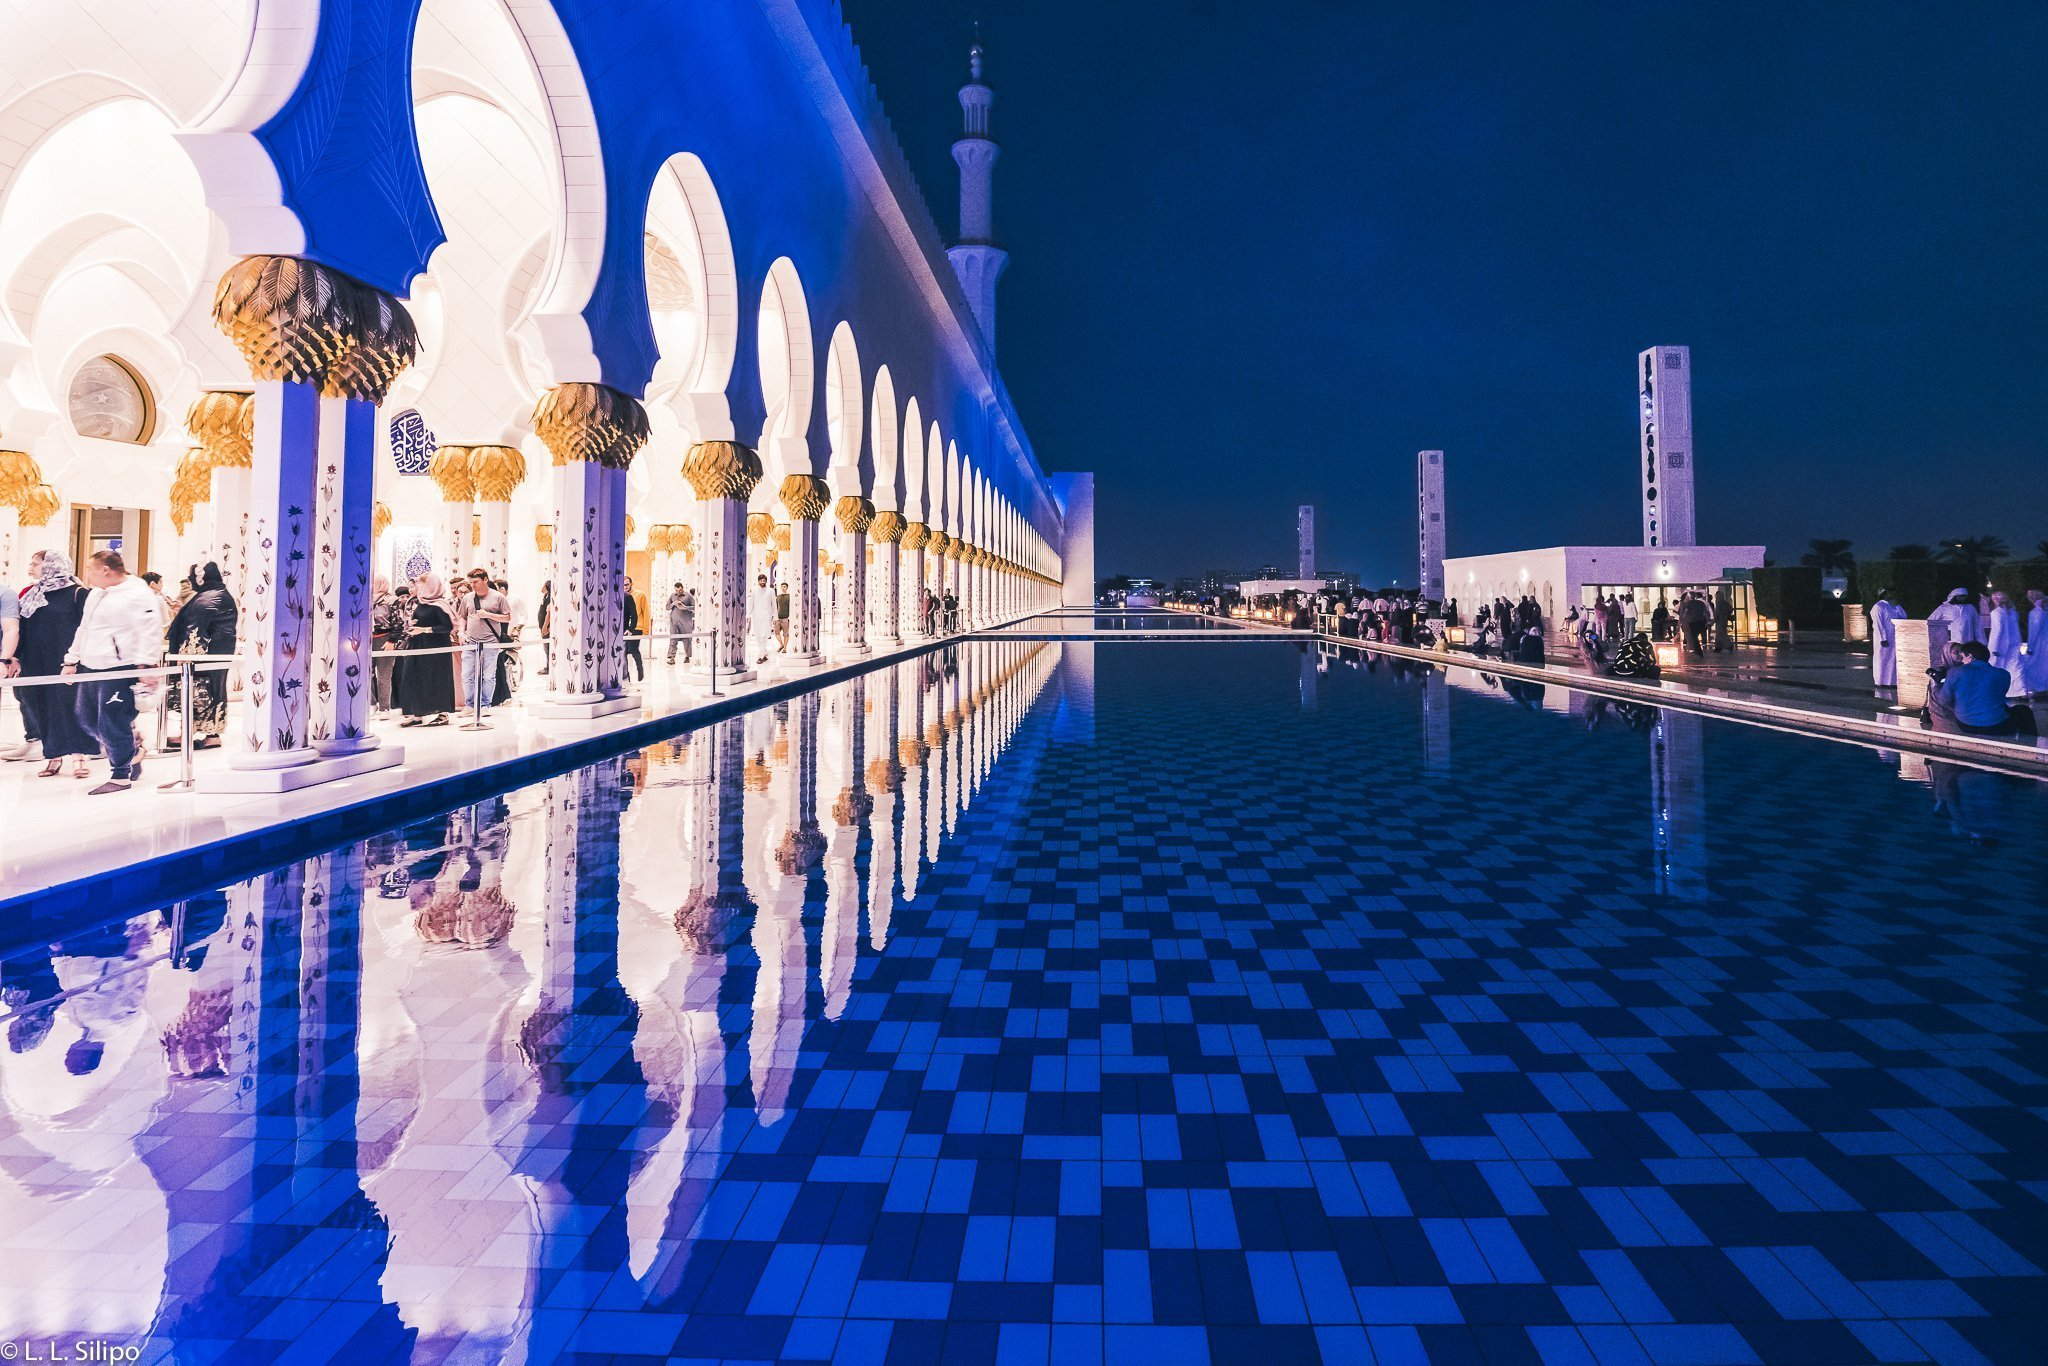 Grand, abu, arabic, architecture, belief, columns, culture, dome, dusk, evening, grand mosque, holy, illuminated, islam, islamic, landmark, lights, majestic, marble, minaret, mosque, muslim, night, palace, pillars, pray, prayer, religion, religious, sheikh sayed mosque, sheikh zayed mosque, stone, sunset, temple, uae, white, worship, zayed